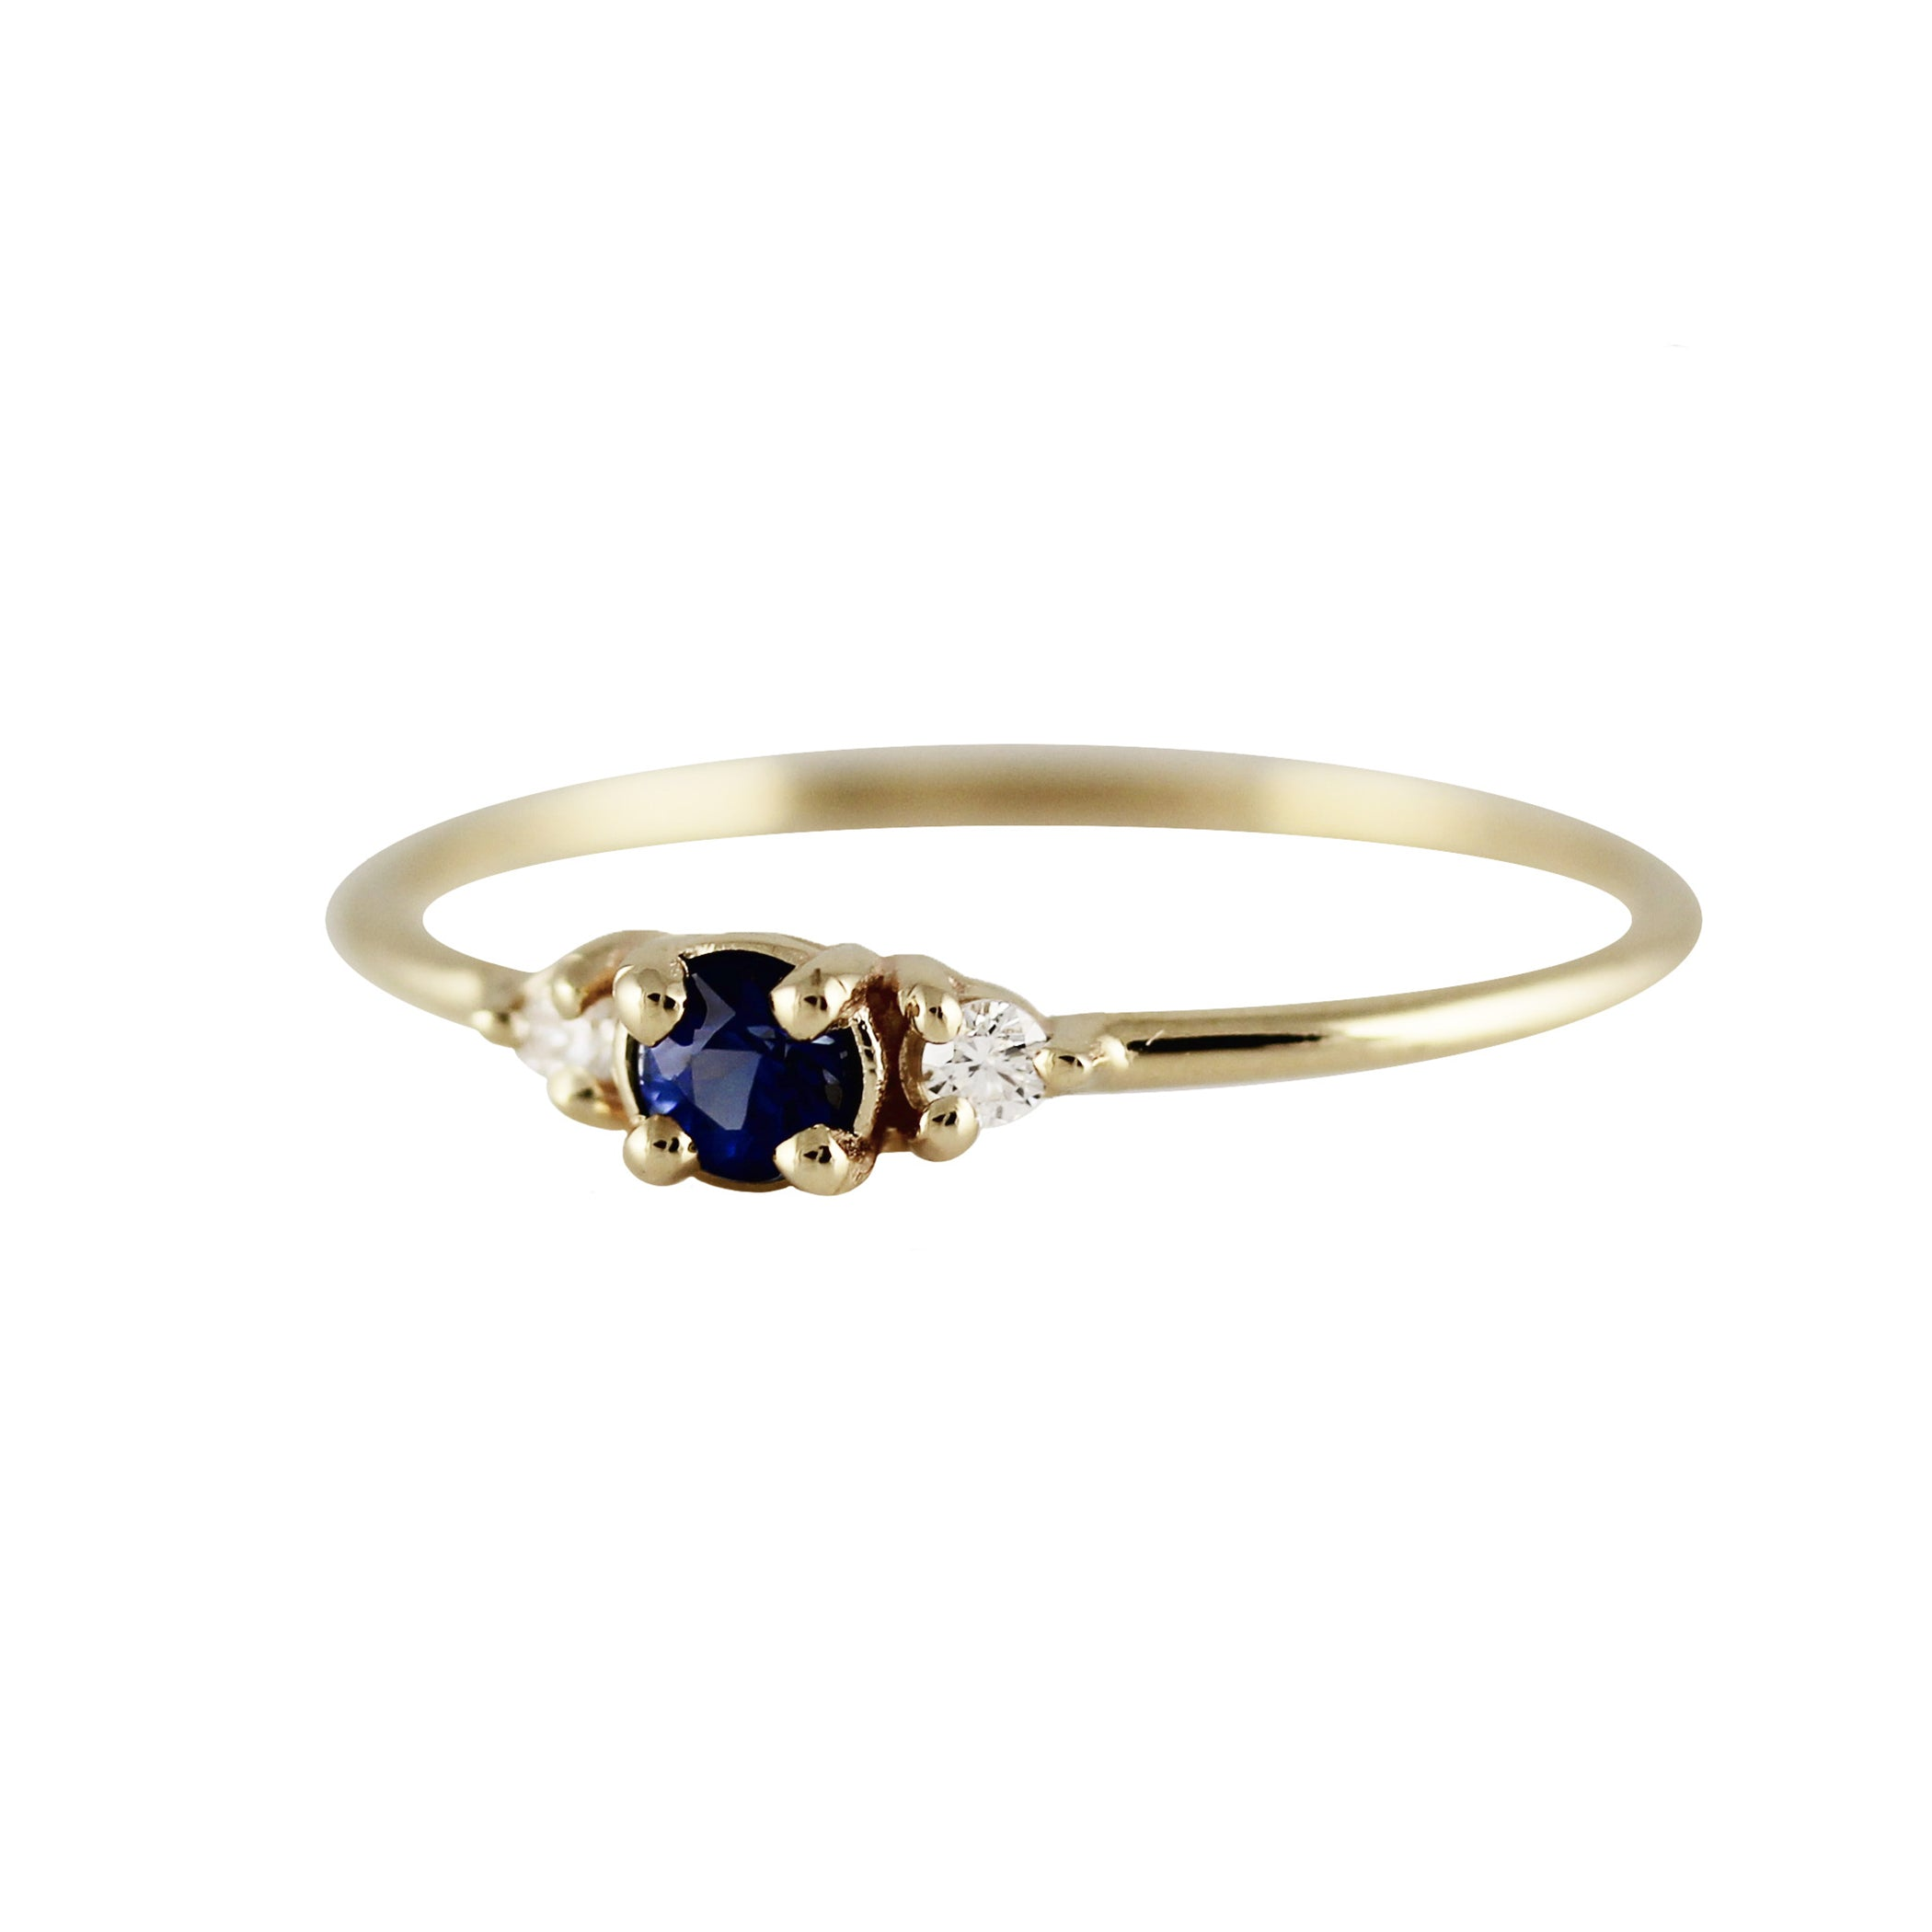 ROUND SAPPHIRE WITH SIDE DIAMONDS RING